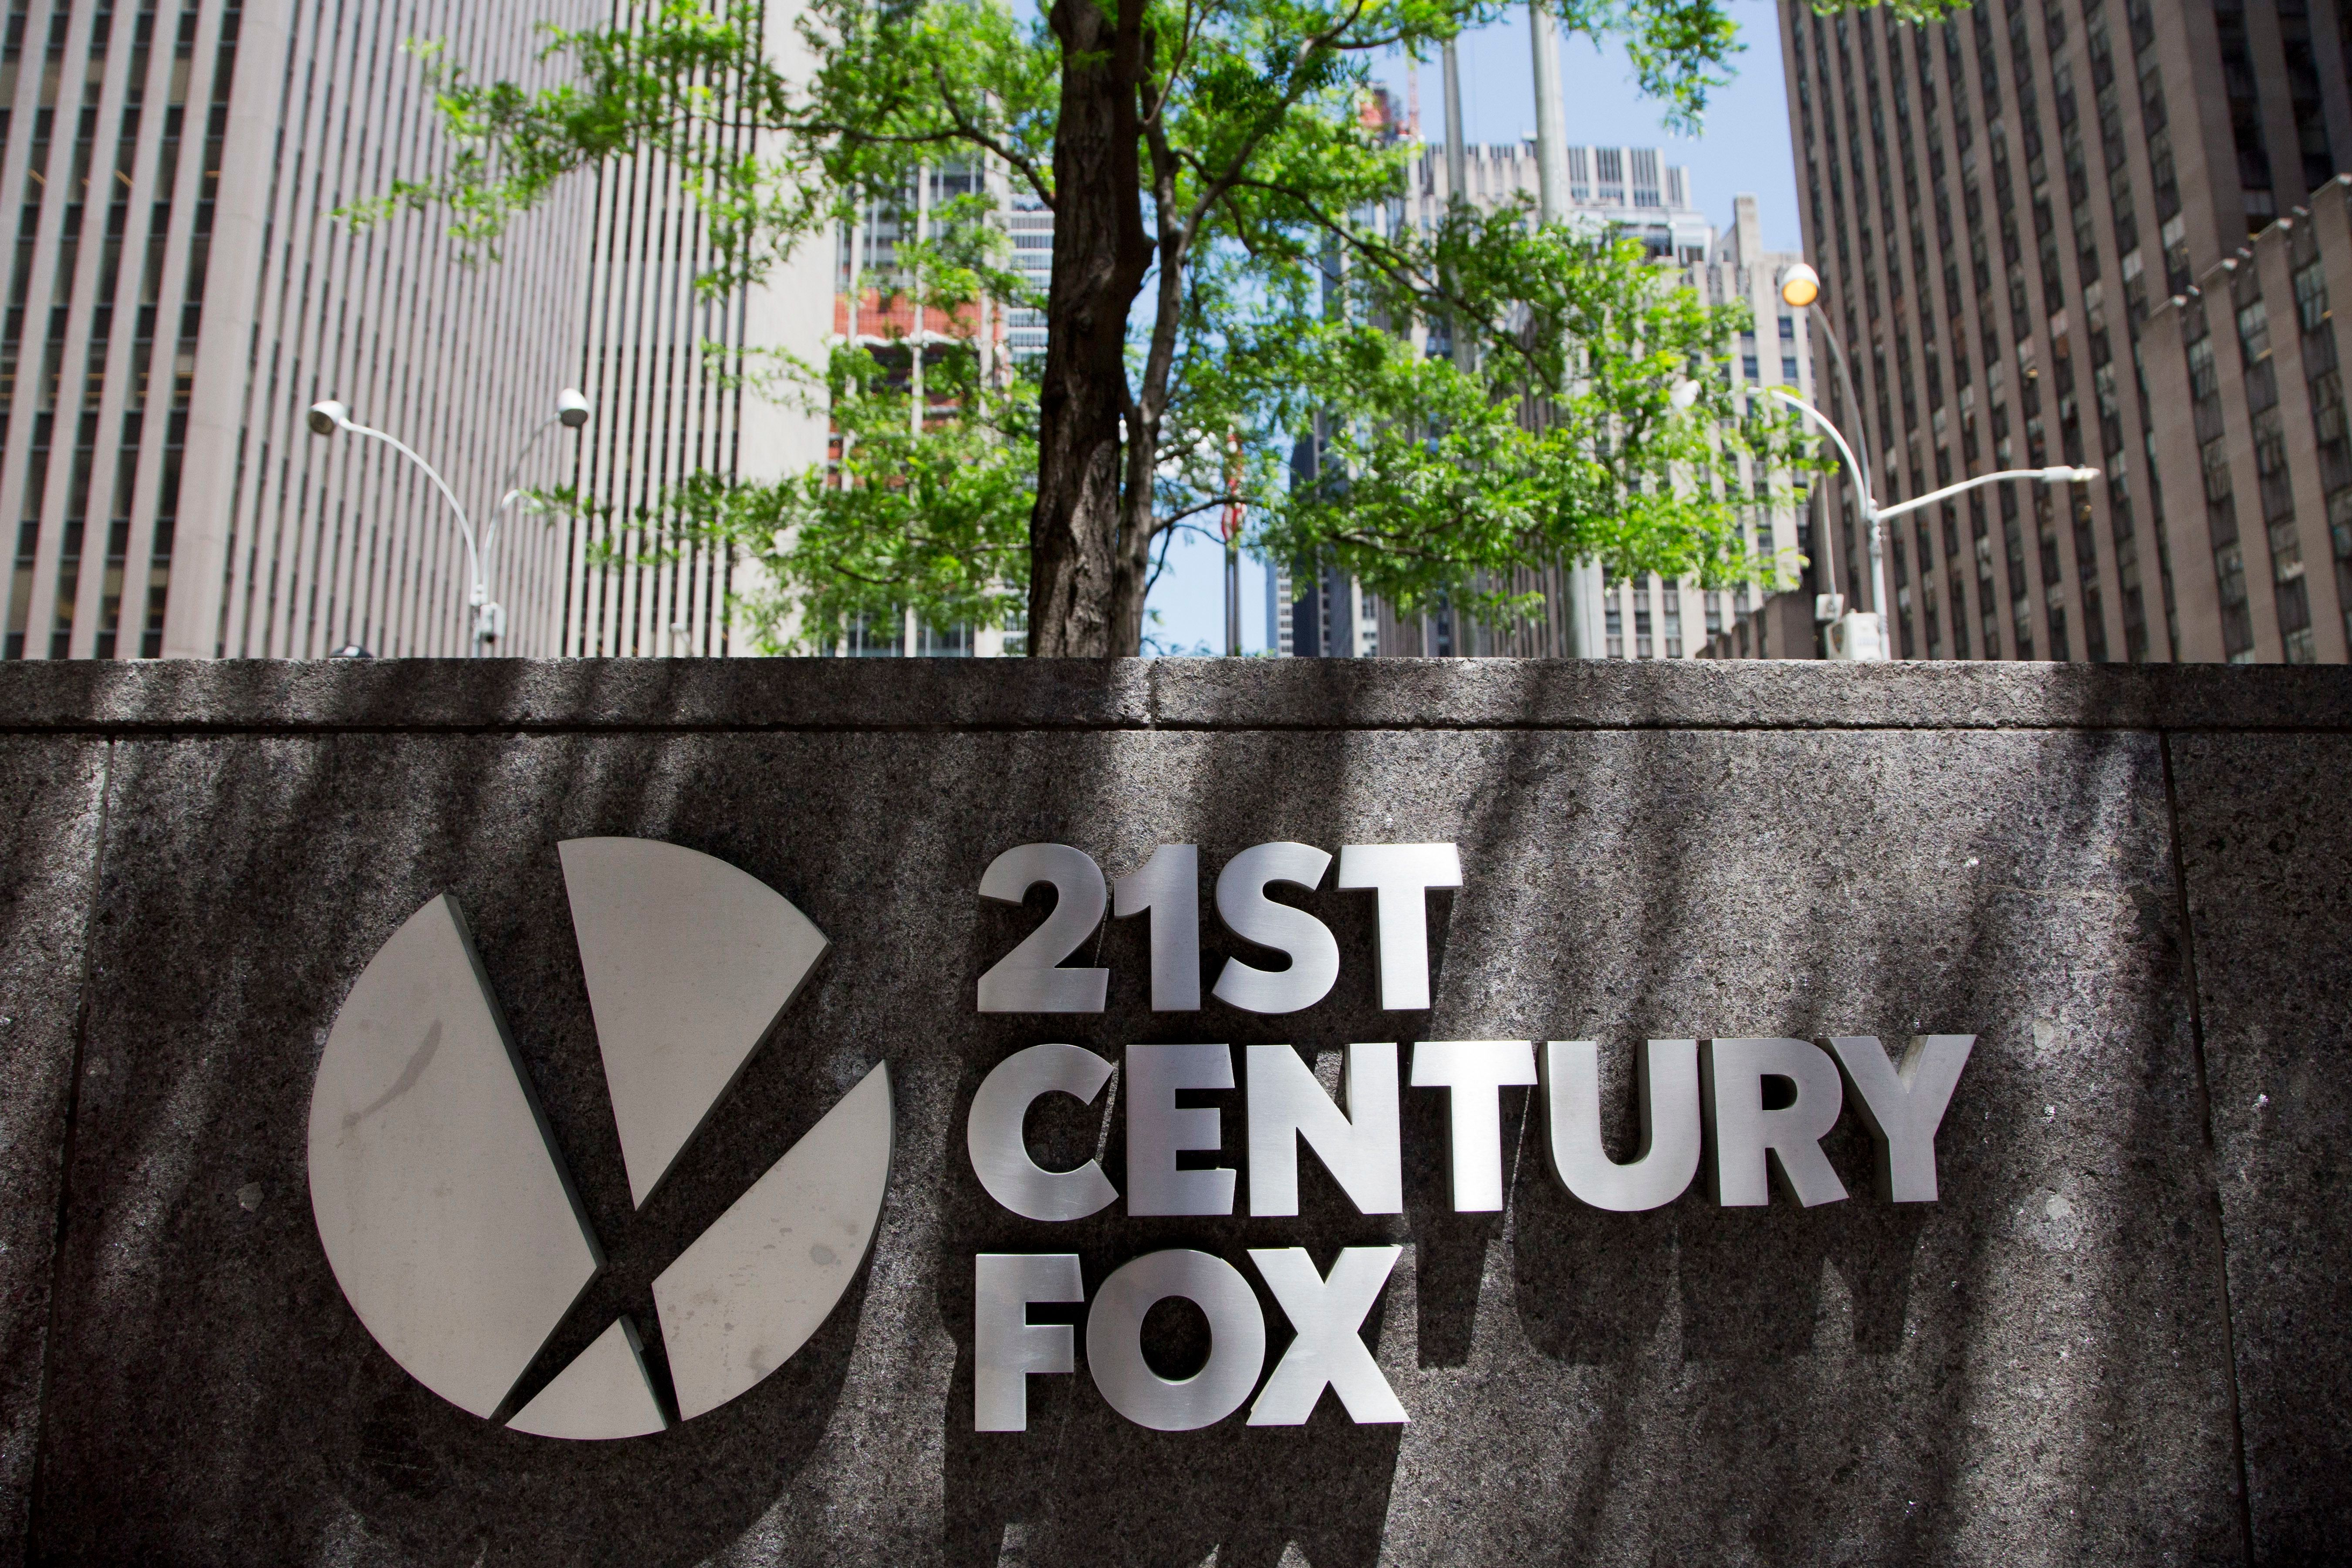 The 21st Century Fox logo is shown outside its New York office on June 14, 2018.